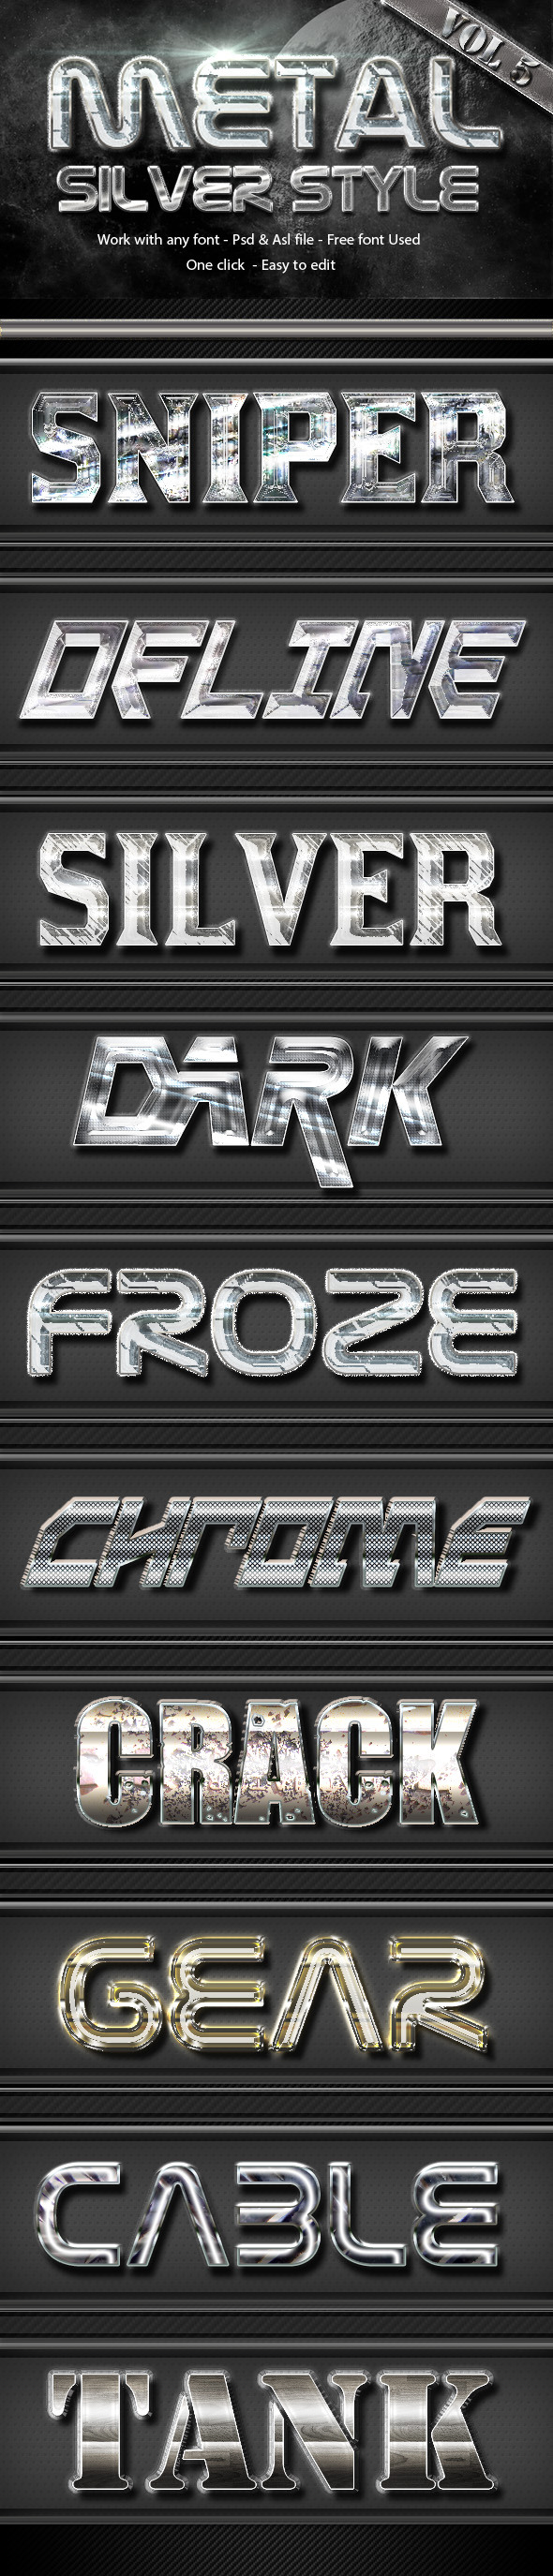 Metal Silver Text Effect Style  Vol 5 - Text Effects Styles